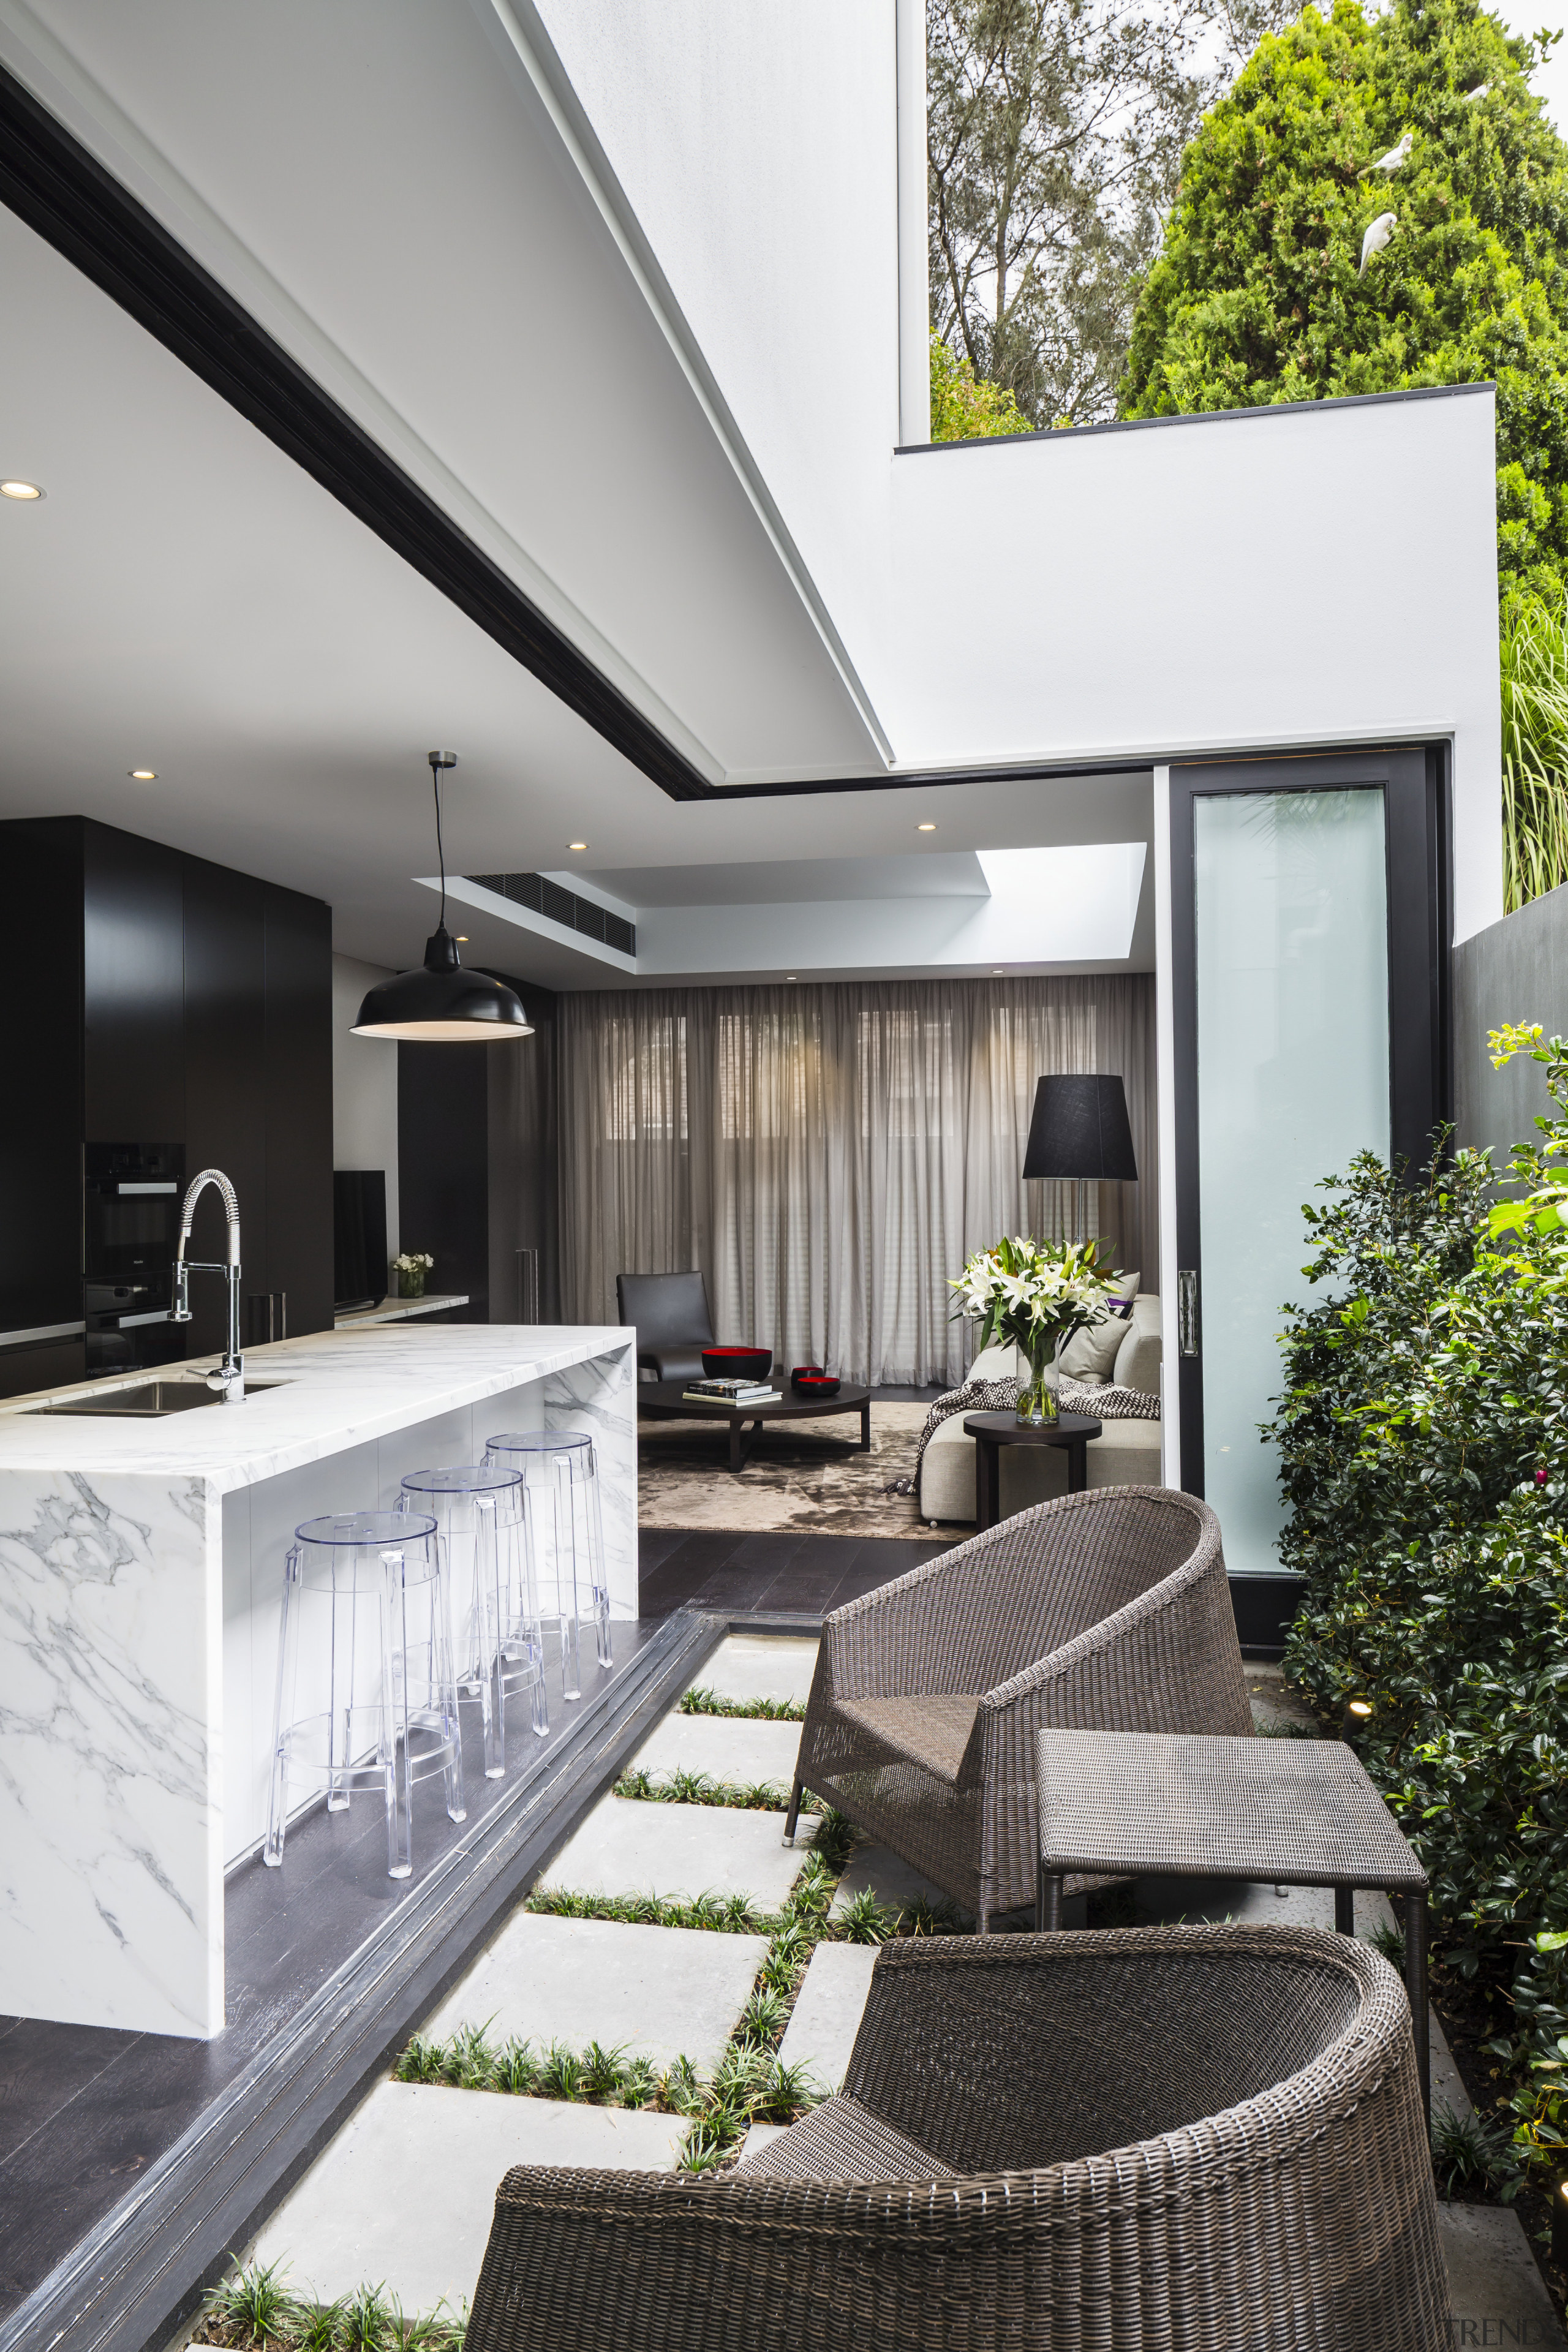 A new kitchen and open-air central courtyard are architecture, backyard, courtyard, daylighting, home, house, interior design, living room, patio, real estate, gray